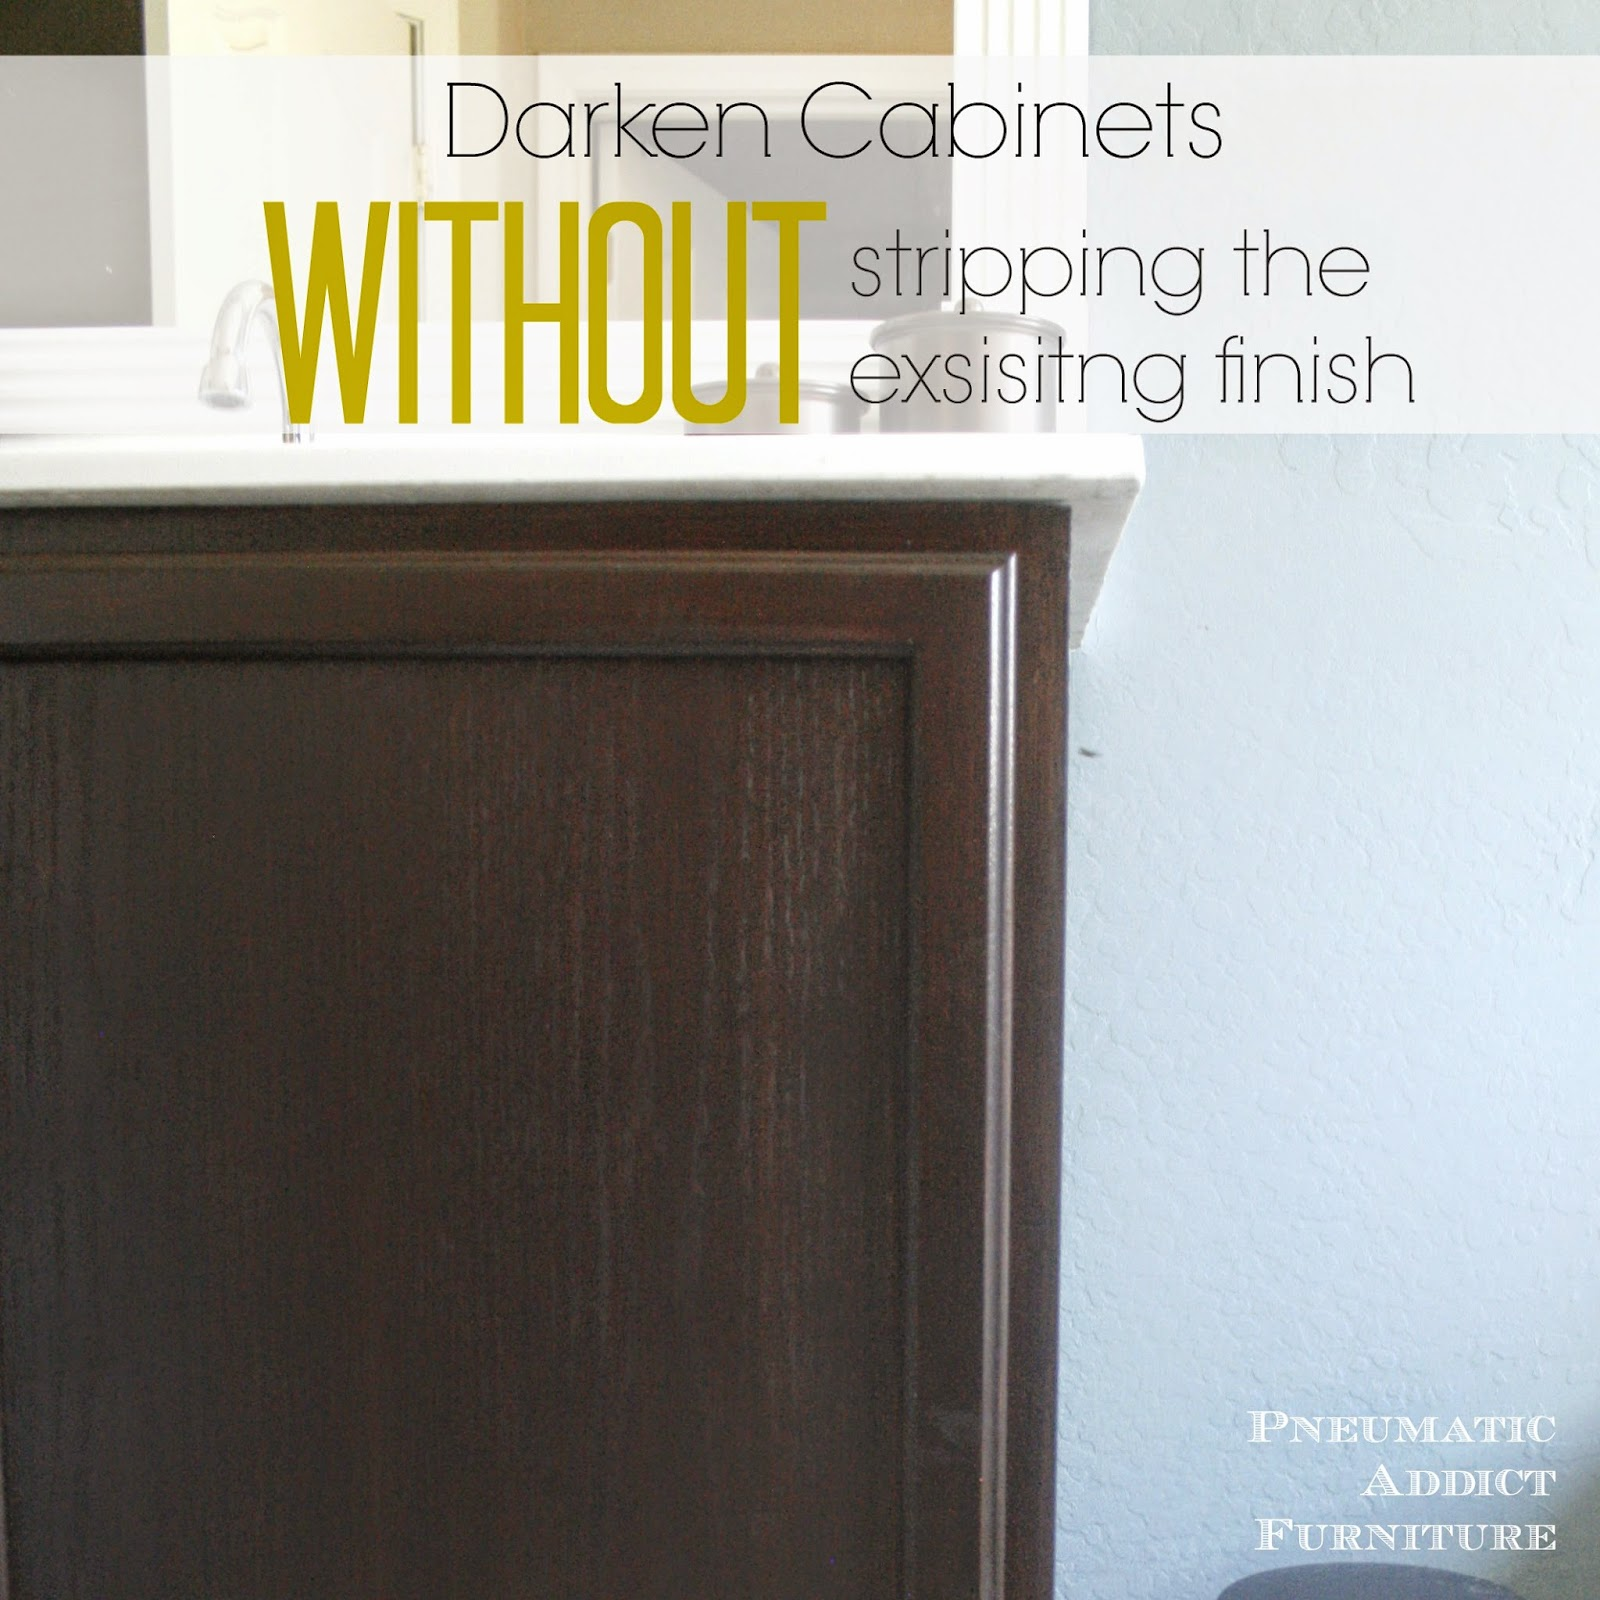 ordinary Restain Kitchen Cabinets Without Stripping #7: Darken Cabinets WITHOUT Stripping the Existing Finish